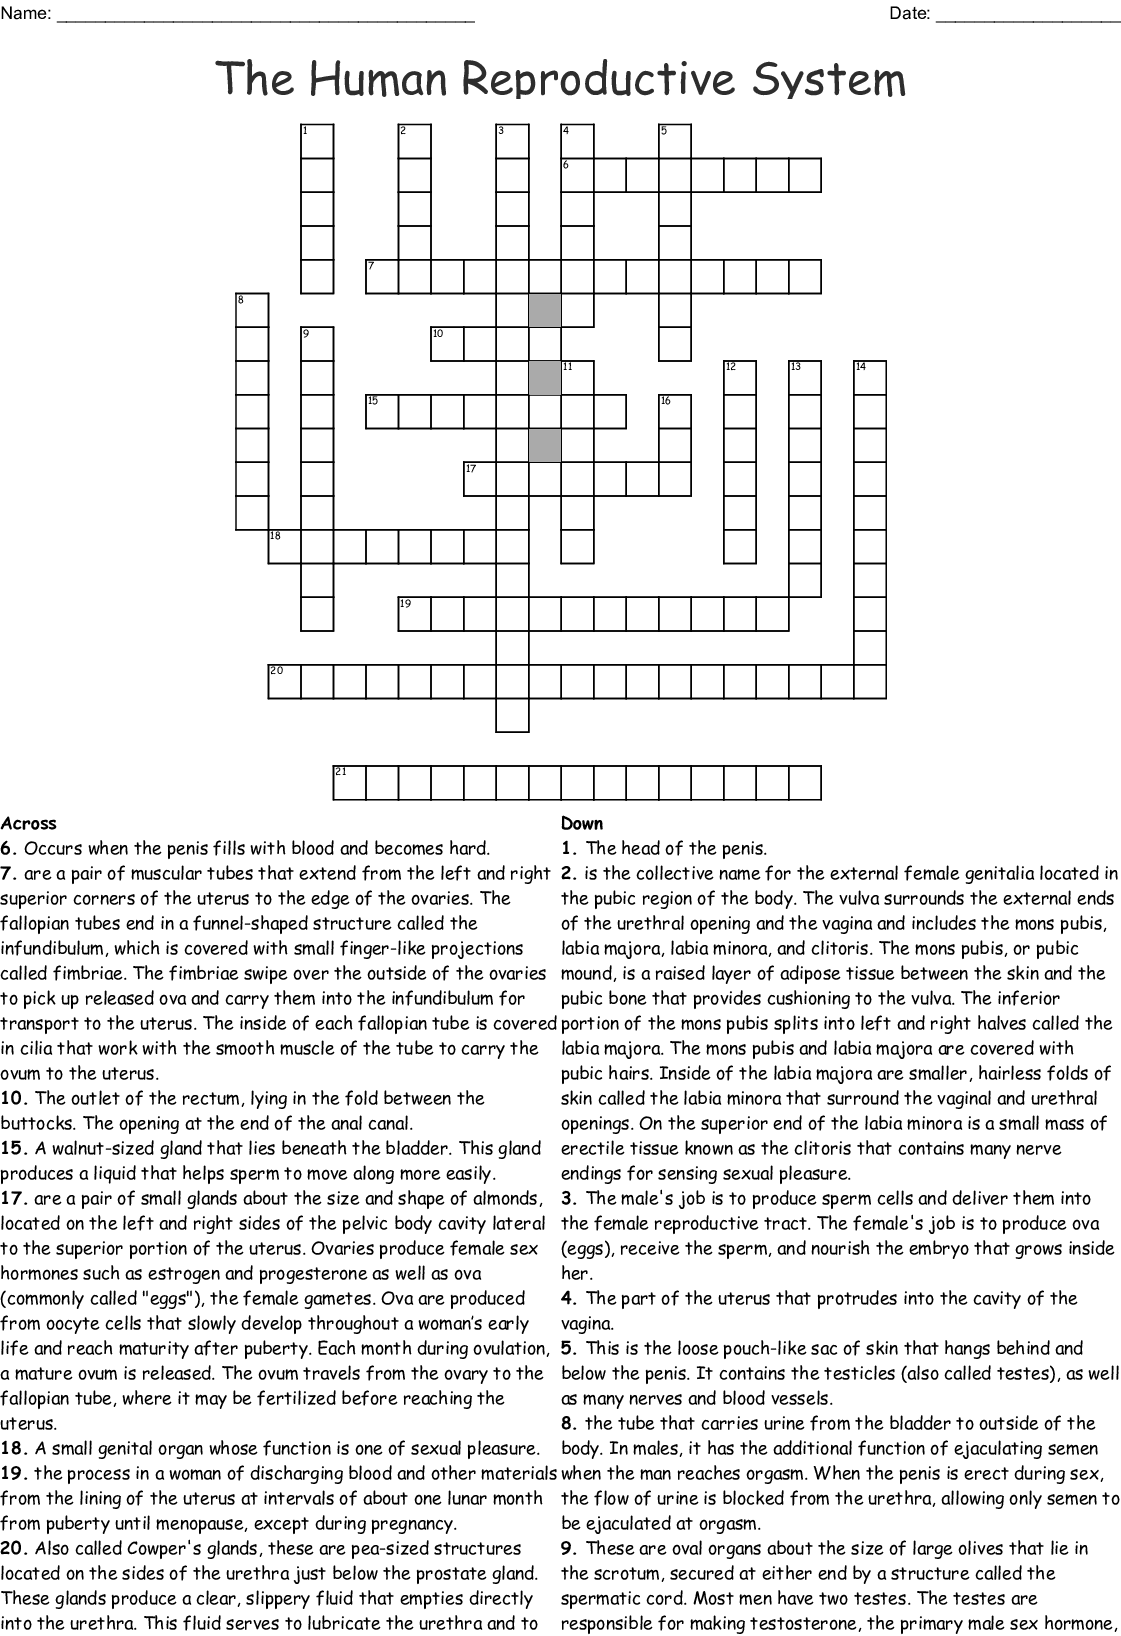 The Human Reproductive System Crossword